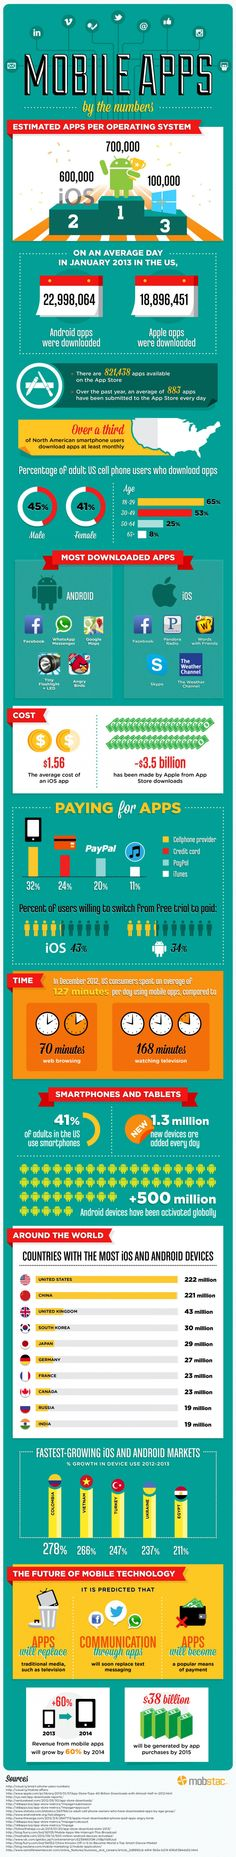 Mobile apps by the numbers - Infographic By www.in/about (Best SEO Company India) App Marketing, Mobile Marketing, Internet Marketing, Social Media Marketing, Lead Generation, Master Marketing Digital, Seo Company, App Development, Application Development